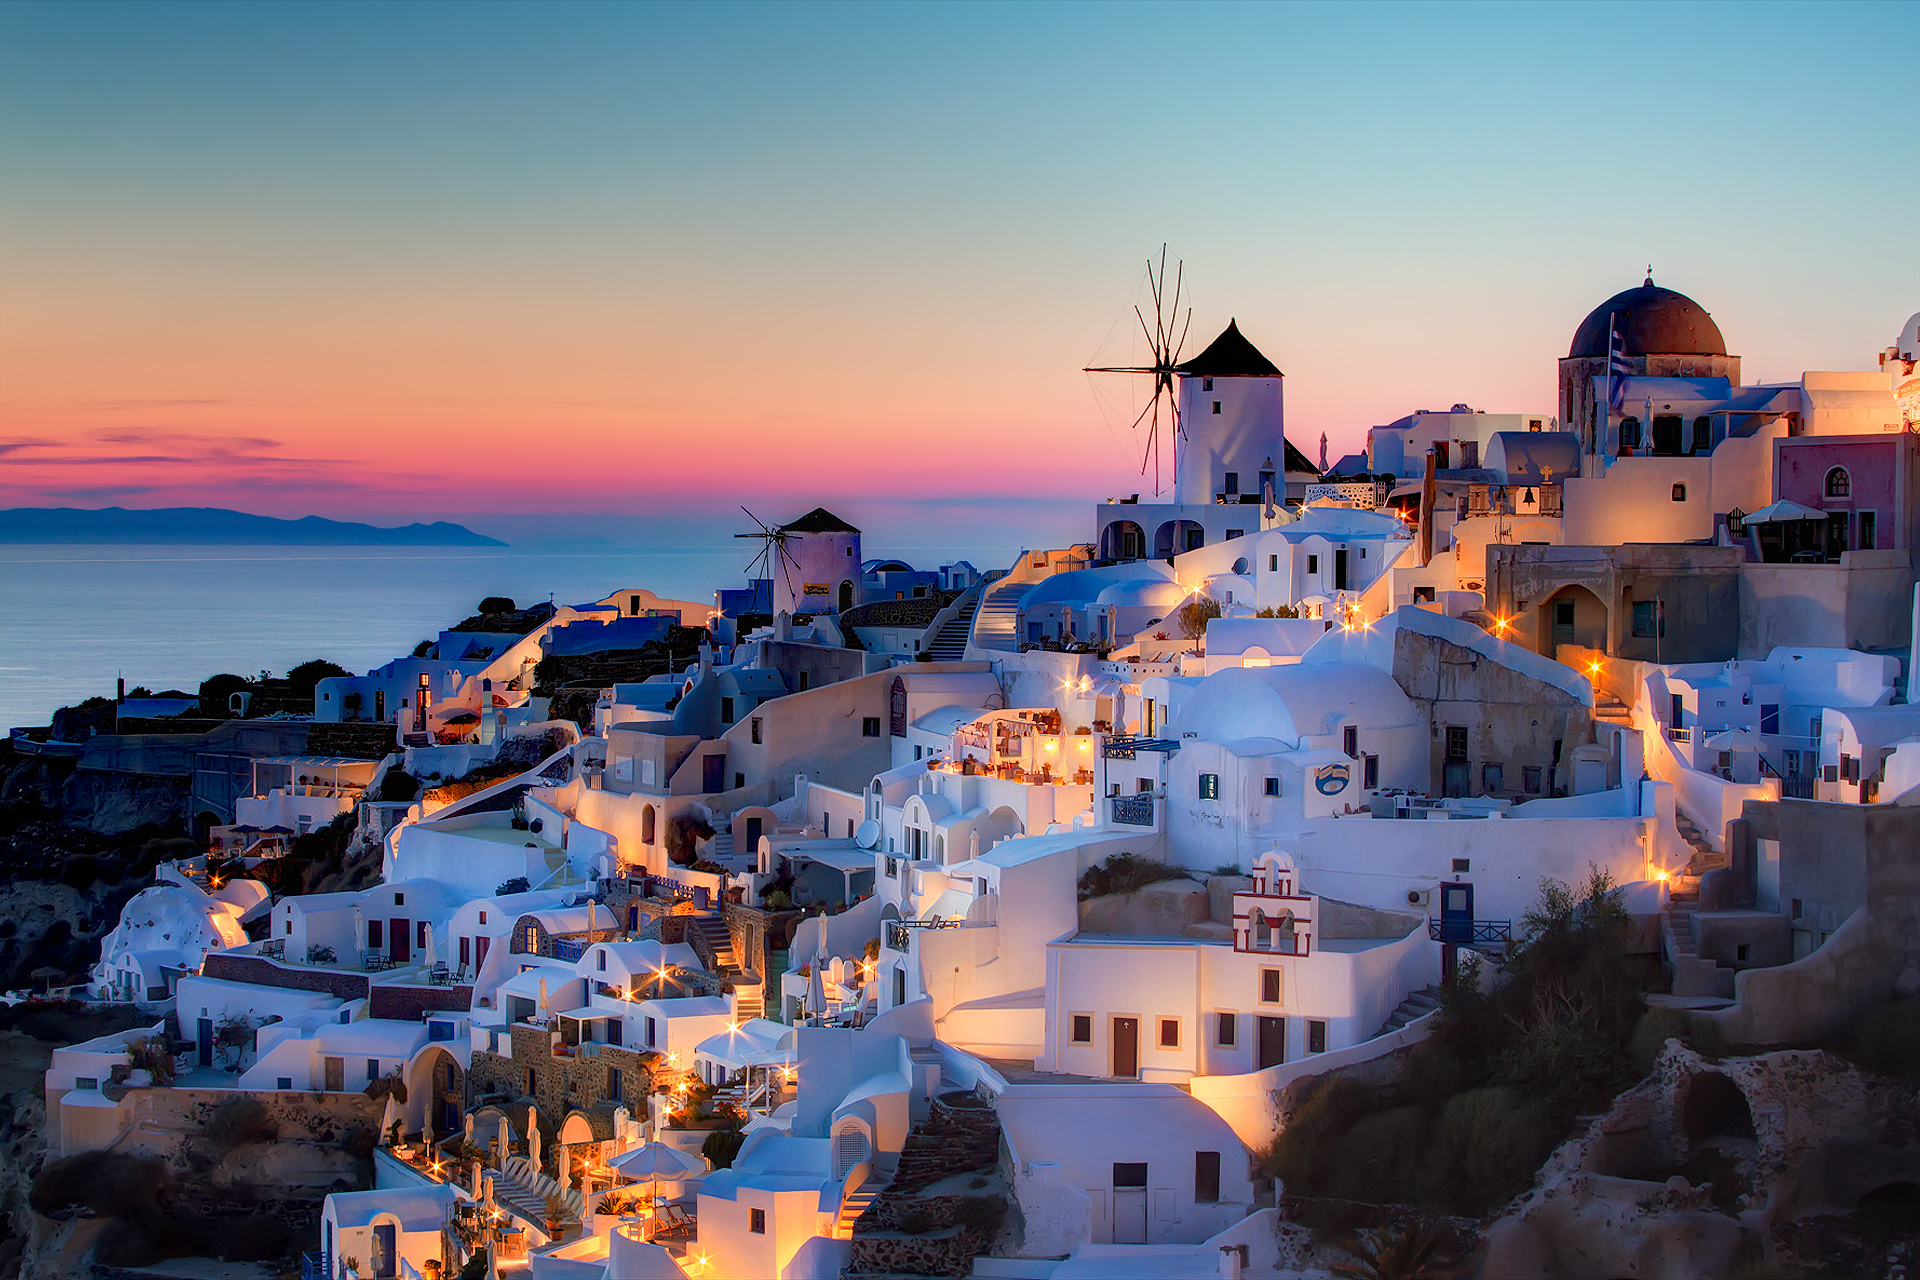 Santorini Sunset HD Wallpaper Background Images 1920x1280